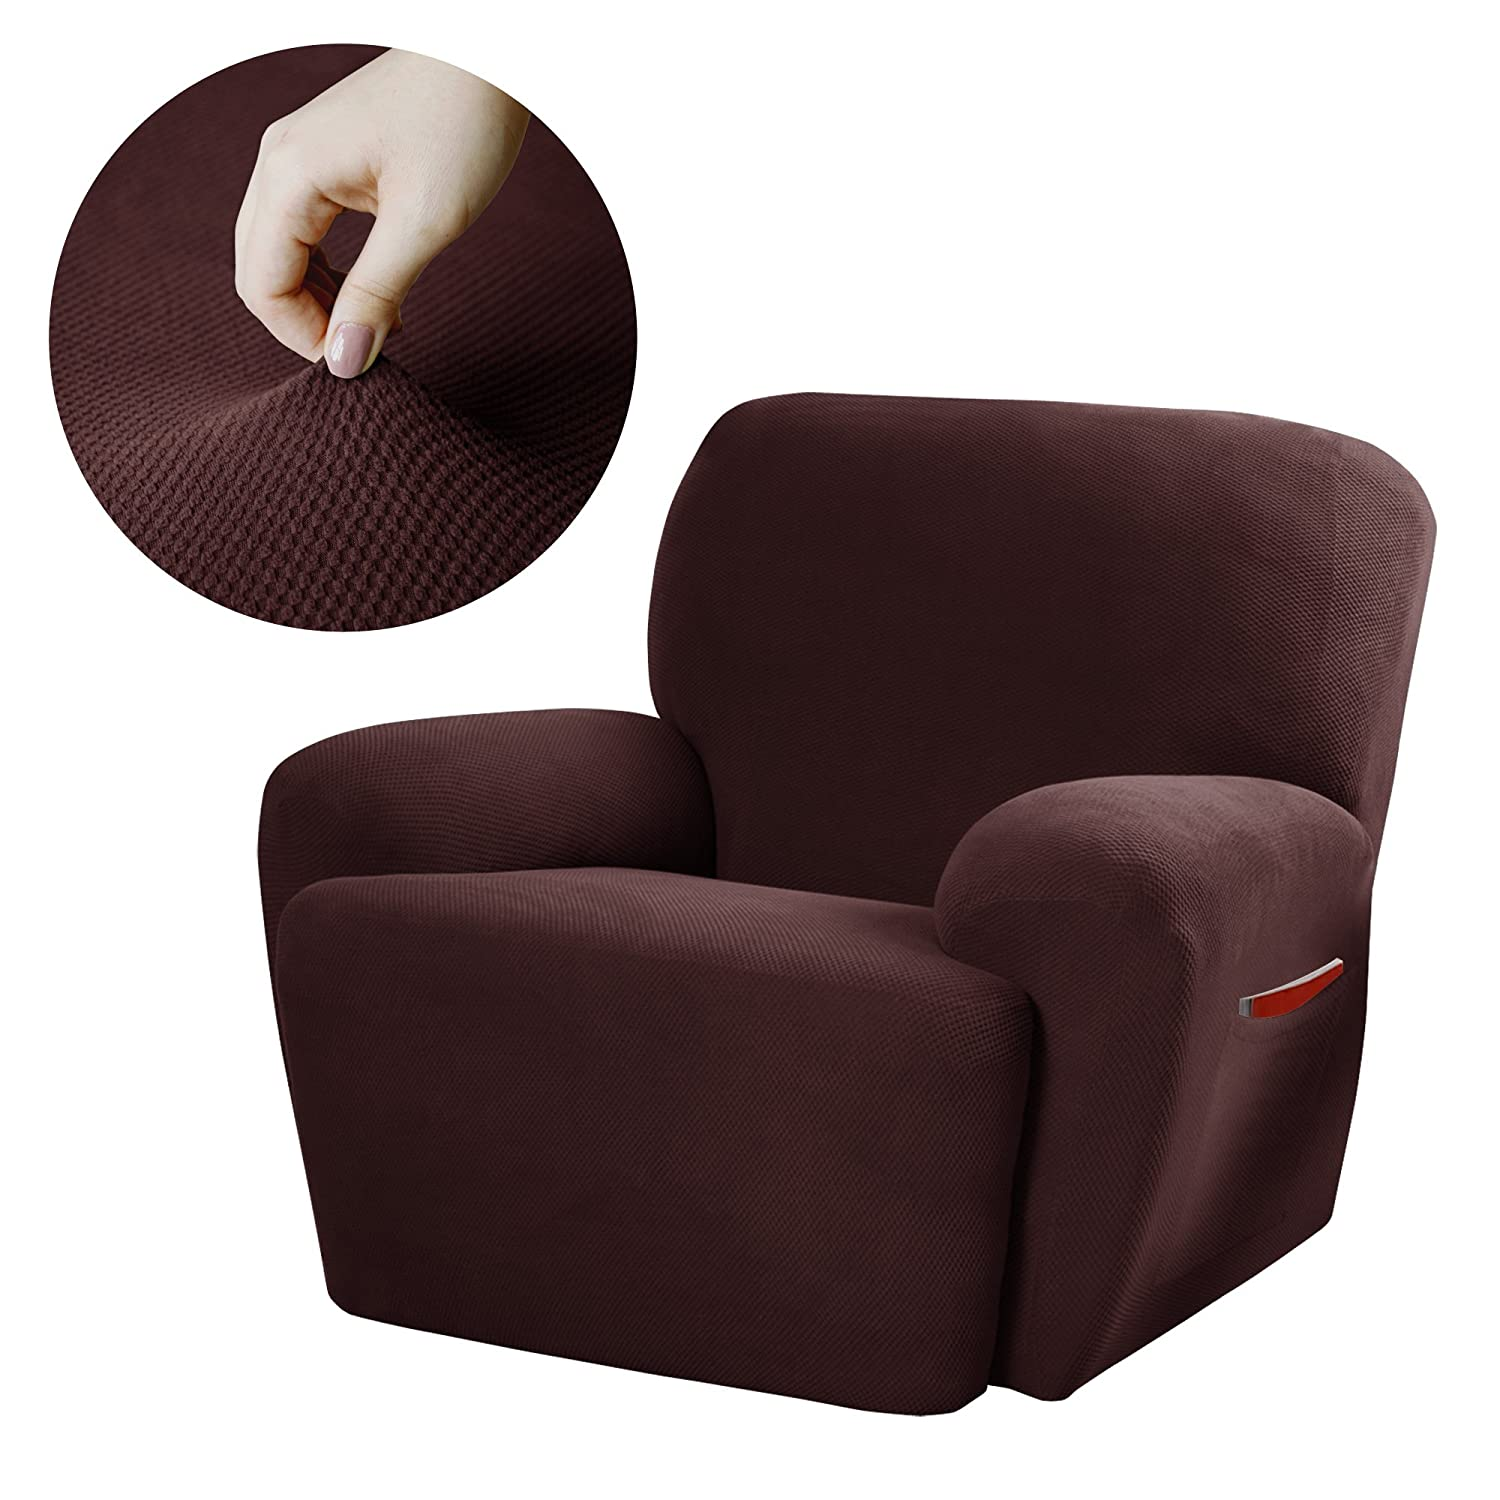 Maytex Pixel Stretch 4-Piece Slipcover Recliner, Chocolate 4300319